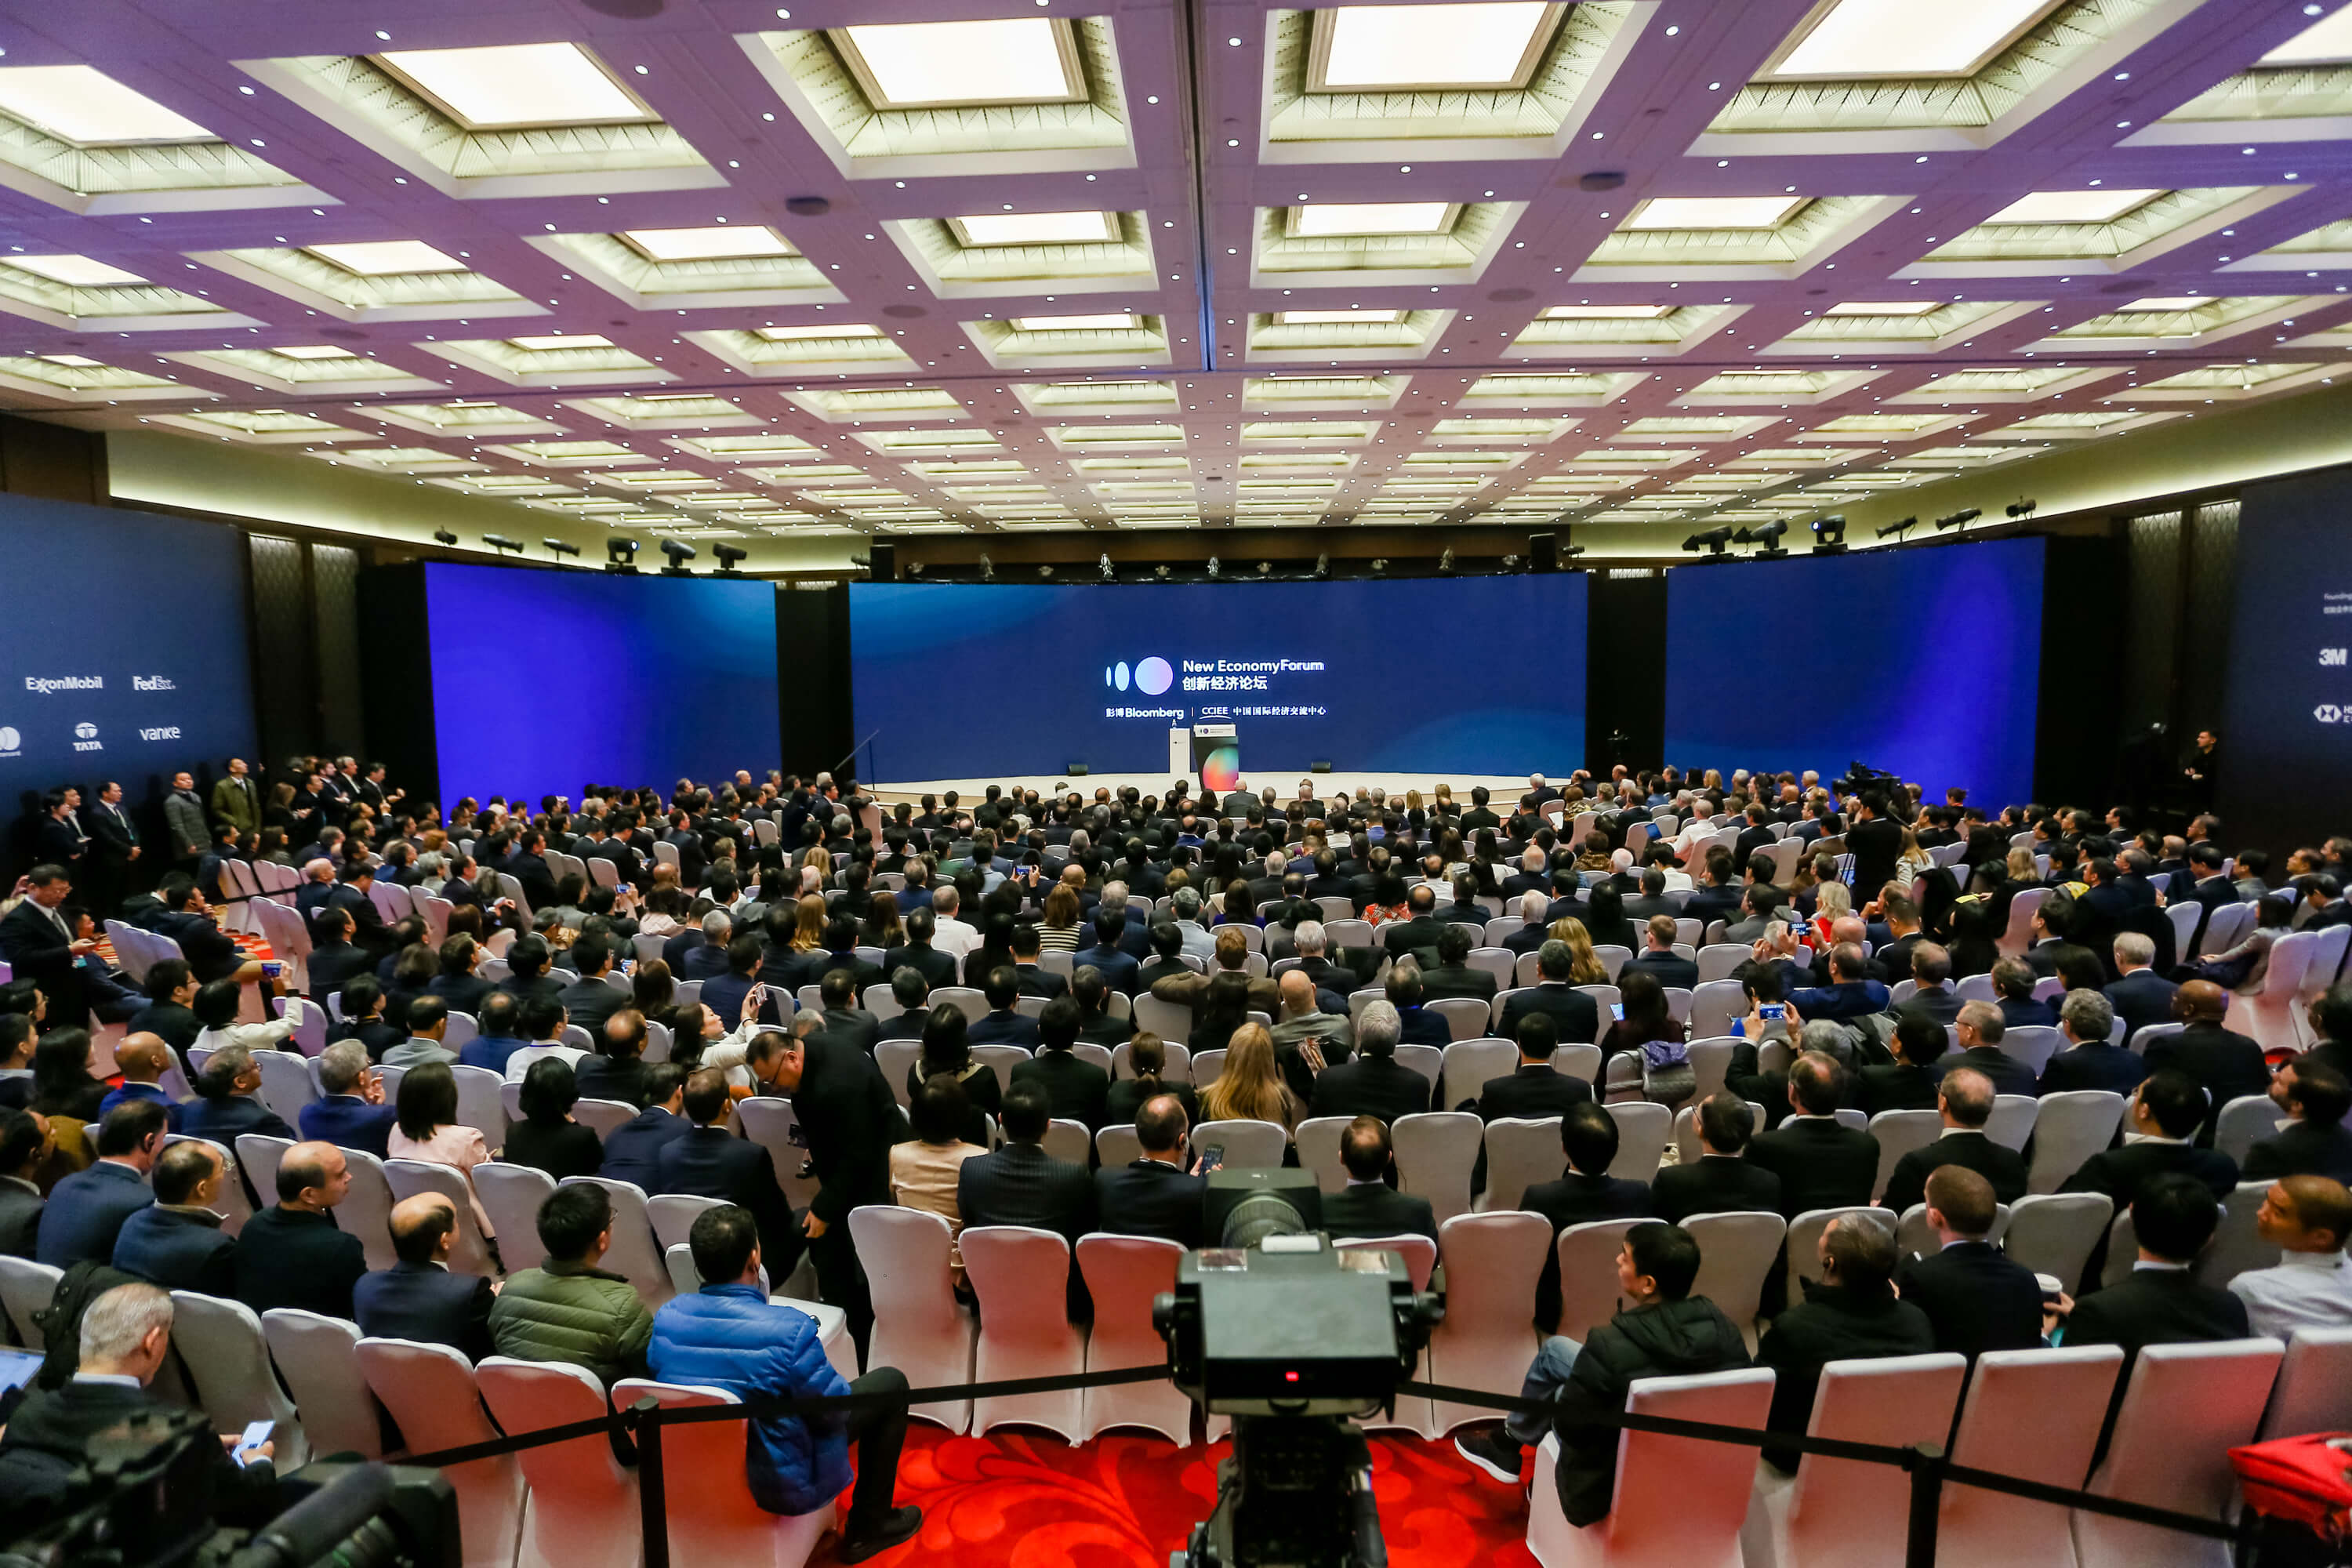 2019 New Economy Forum Opens in Beijing